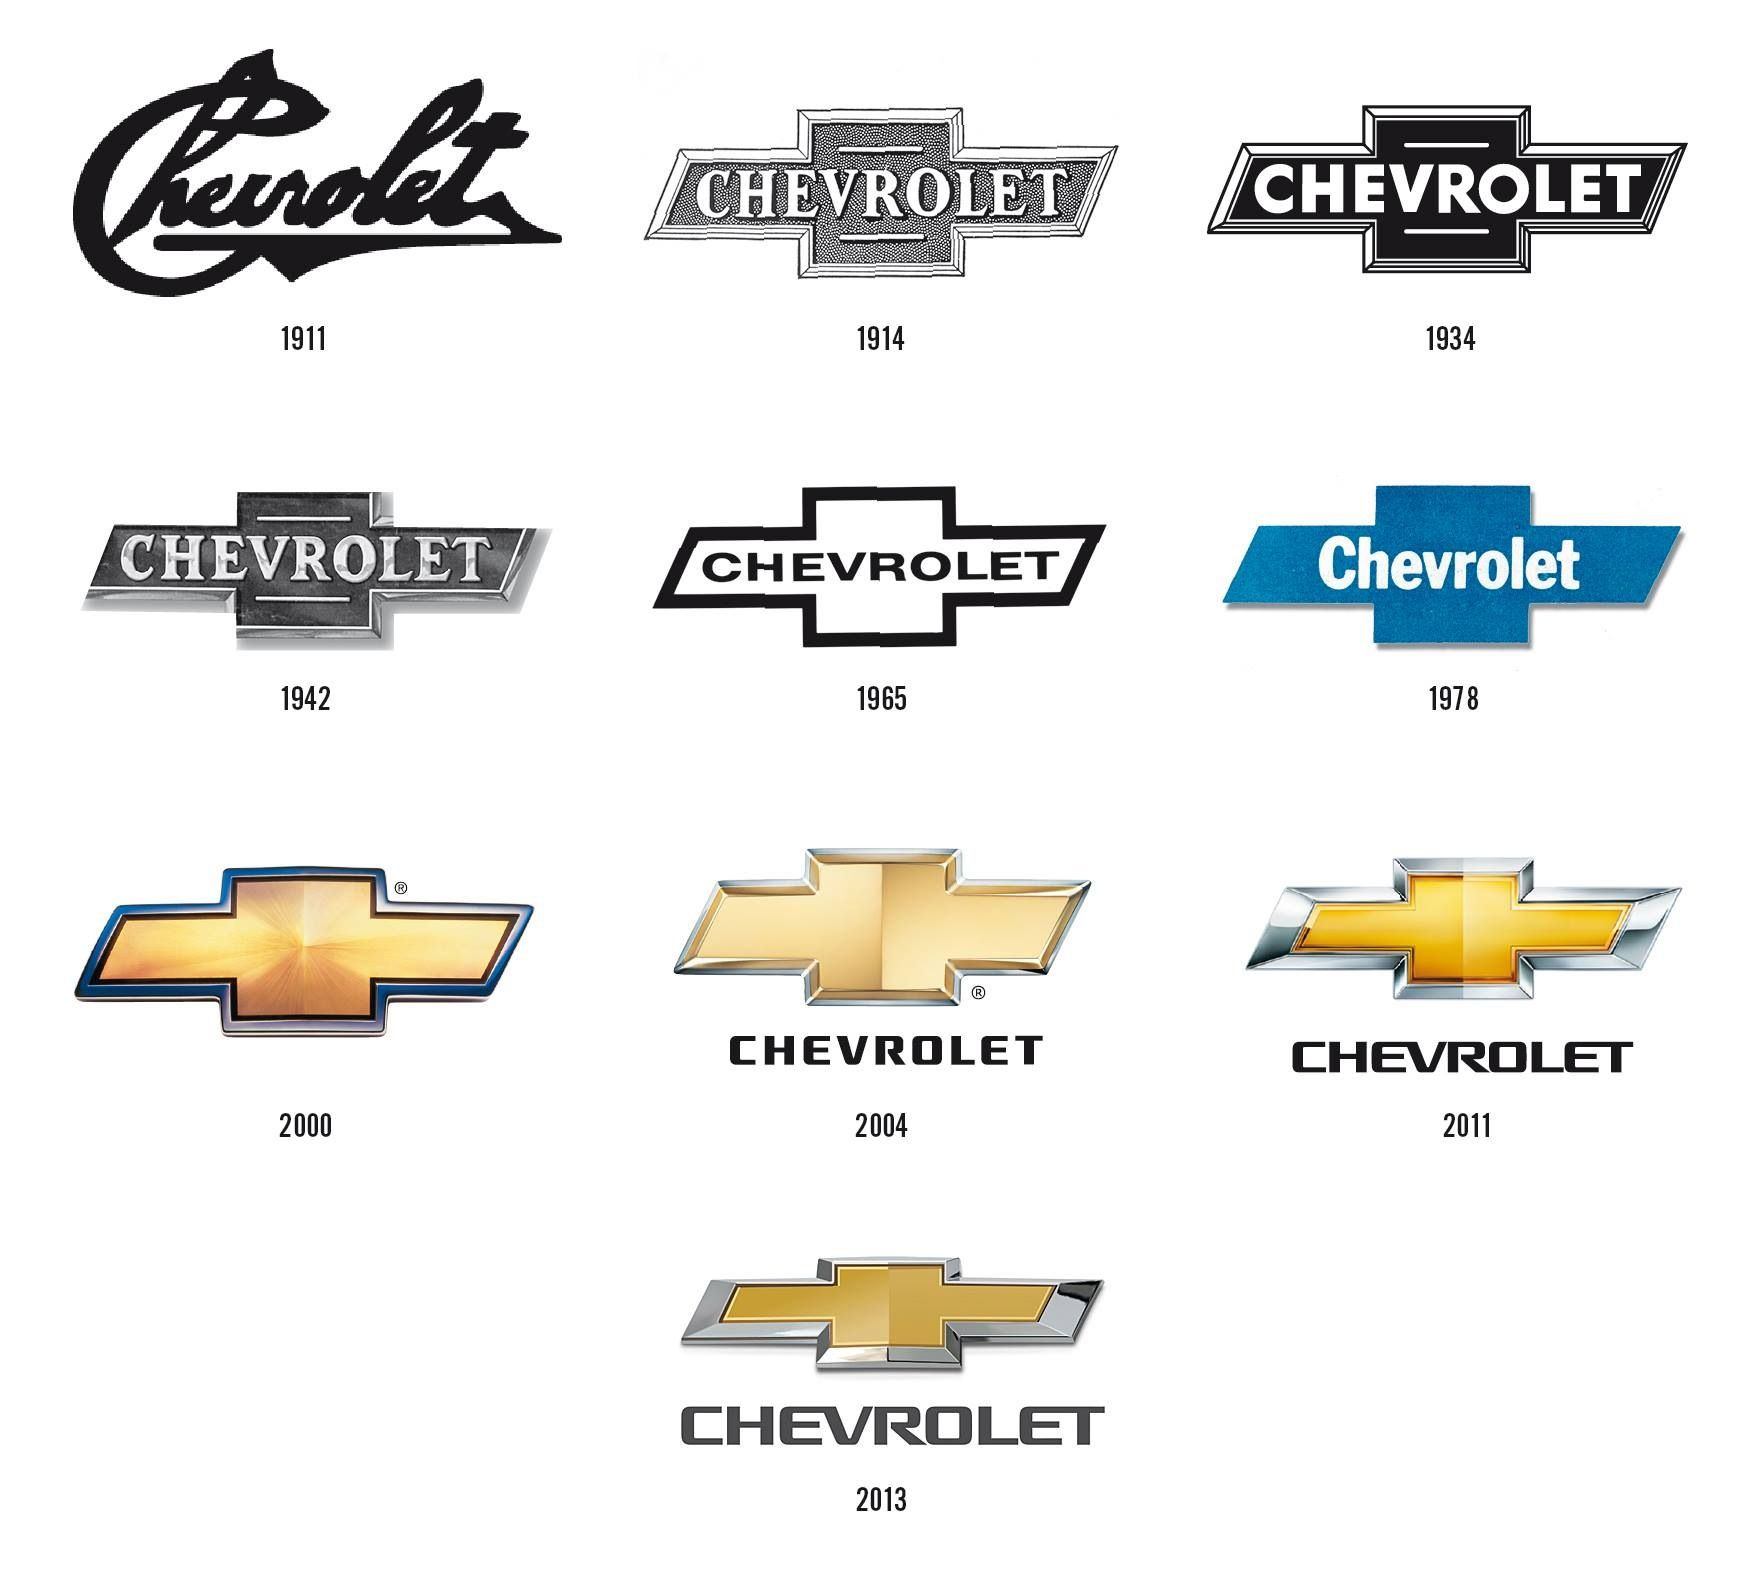 Chevrolet Chevy we use genuine Parts Gm round sign shop poster logo tag ss gmc